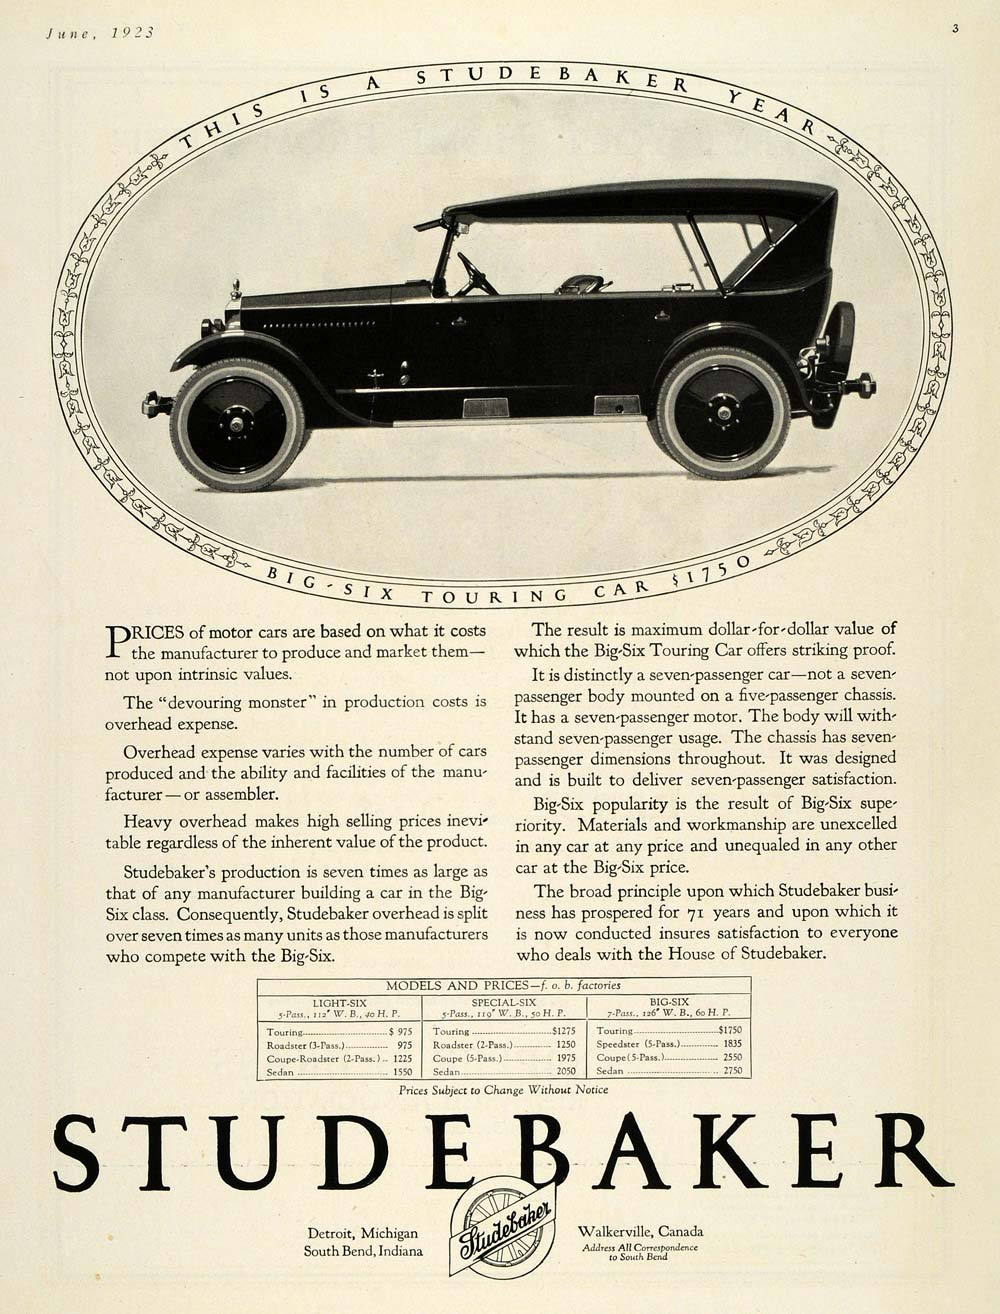 1923 Ad Antique Studebaker Big Six Touring Car Pricing - ORIGINAL HG1